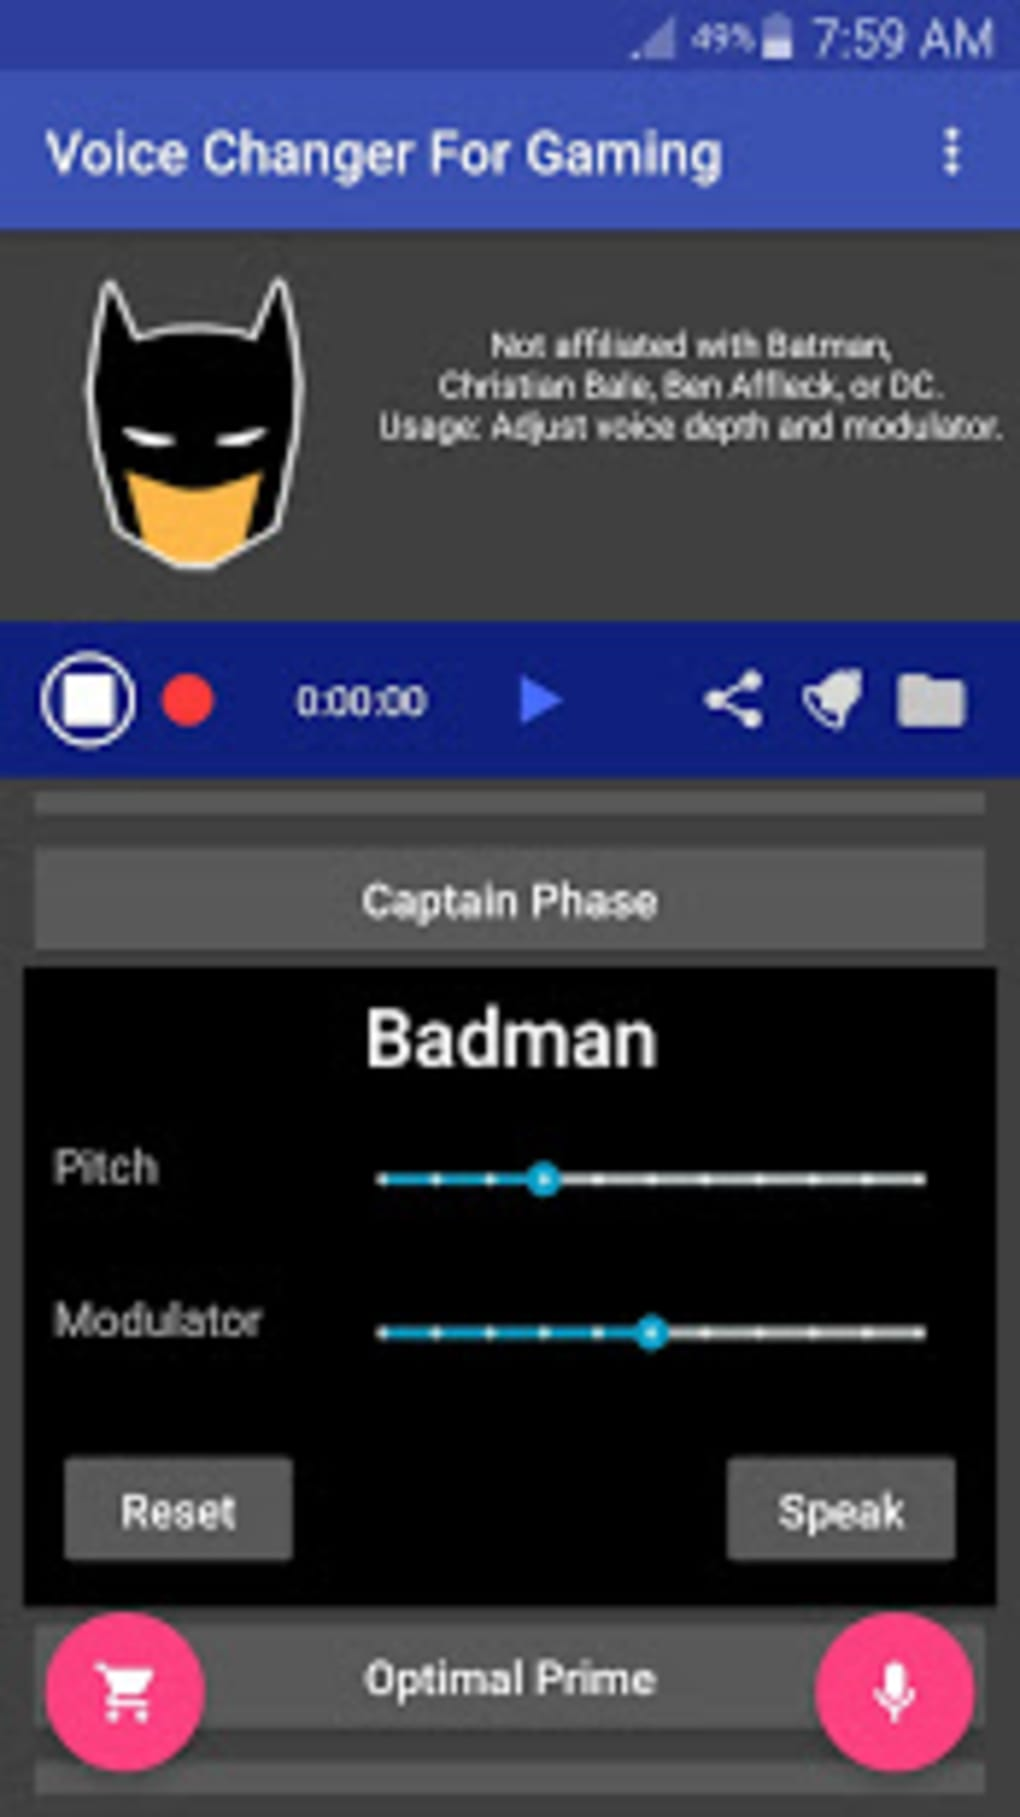 Voice Changer for Gaming PC PS4 XBox 2ndPhone for Android - Download